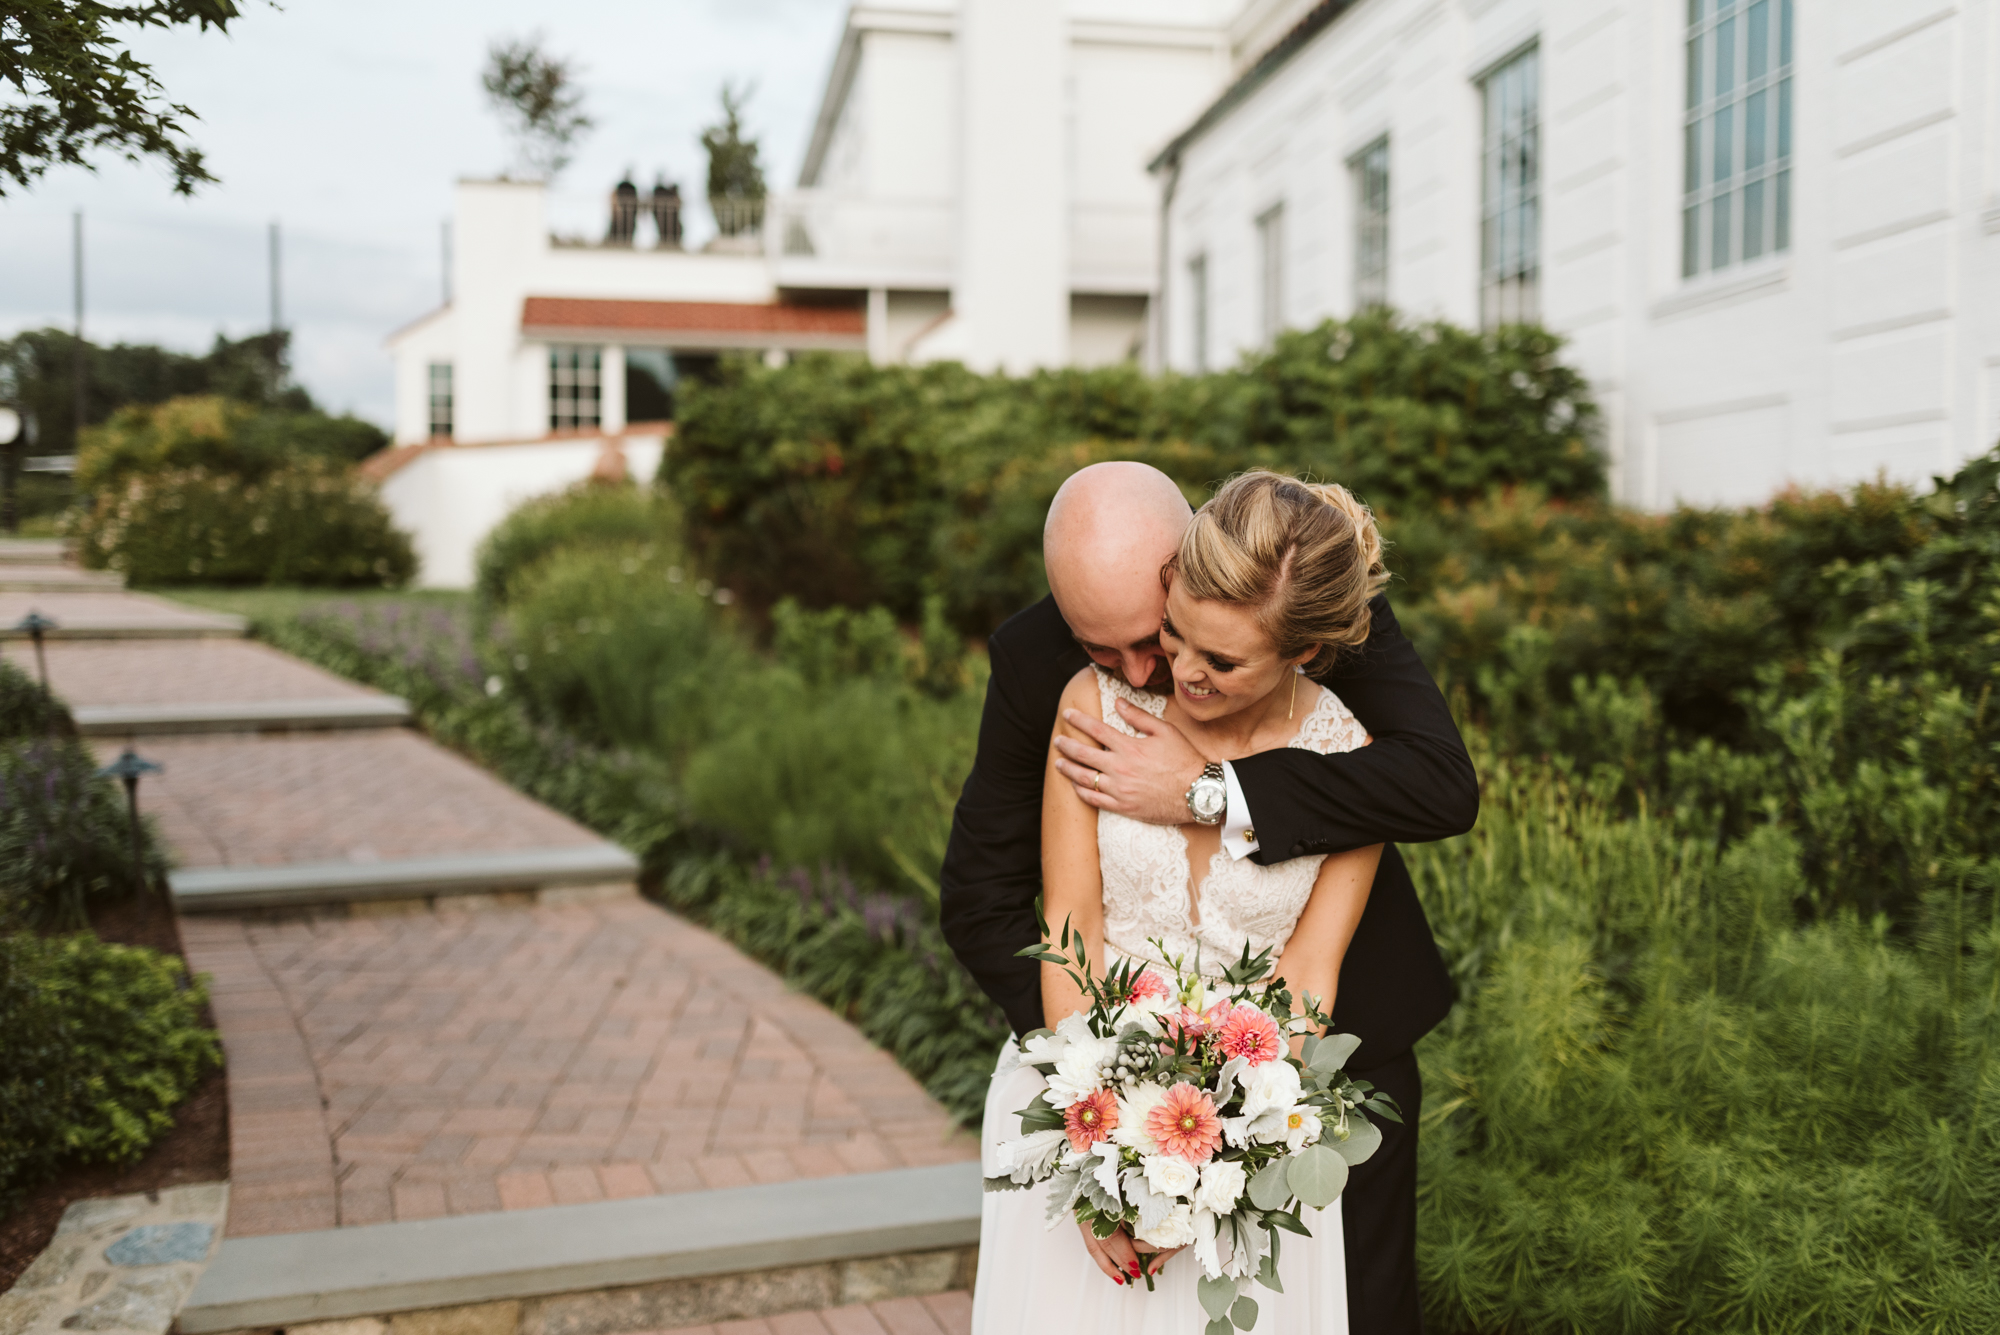 Elegant, Columbia Country Club, Chevy Chase Maryland, Baltimore Wedding Photographer, Classic, Traditional, Groom Holding Bride from Behind, Happy Couple, Meg Owen Floral Designs